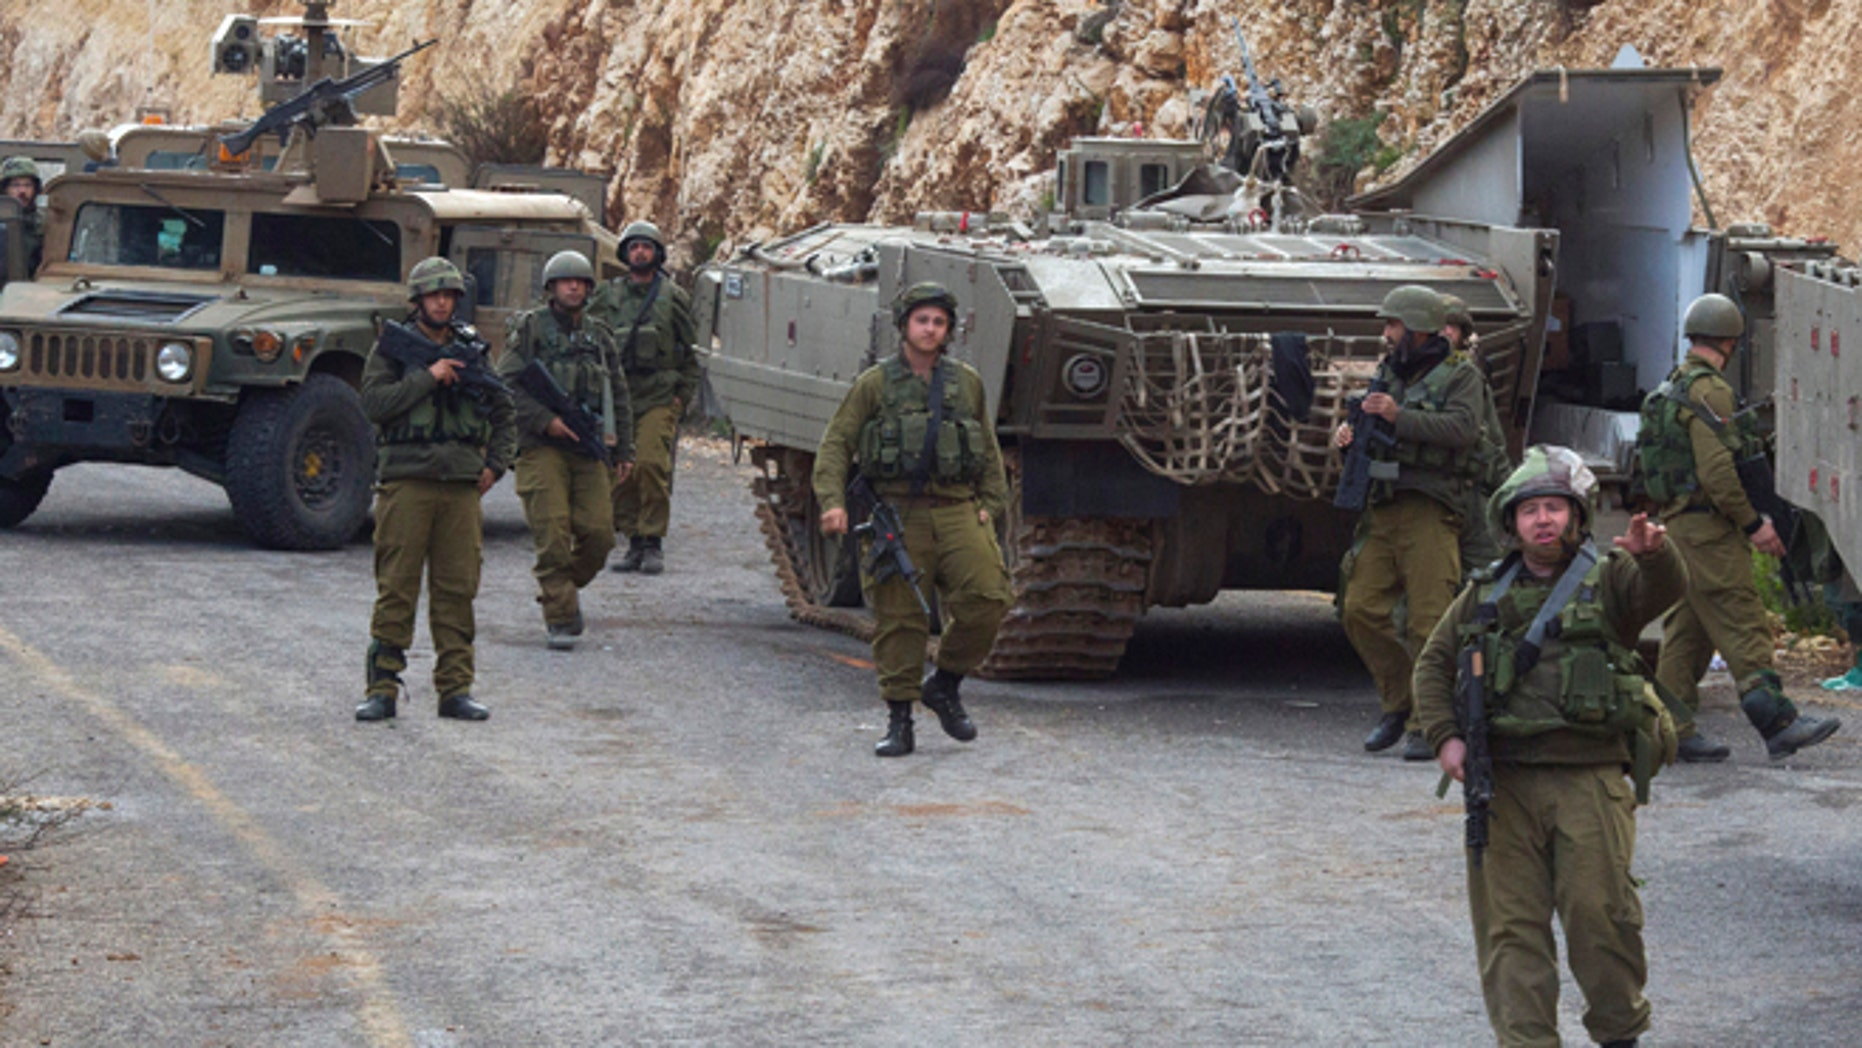 "Jan. 28, 2015: Israeli soldiers secure the Israel-Lebanon border. The Lebanese Hezbollah group is claiming responsibility for todays attack on an Israeli military convoy. Hezbollah claims the attack destroyed a number of Israeli vehicles and caused casualties among ""enemy ranks."" Israel later fired at least 35 artillery shells into Lebanon."